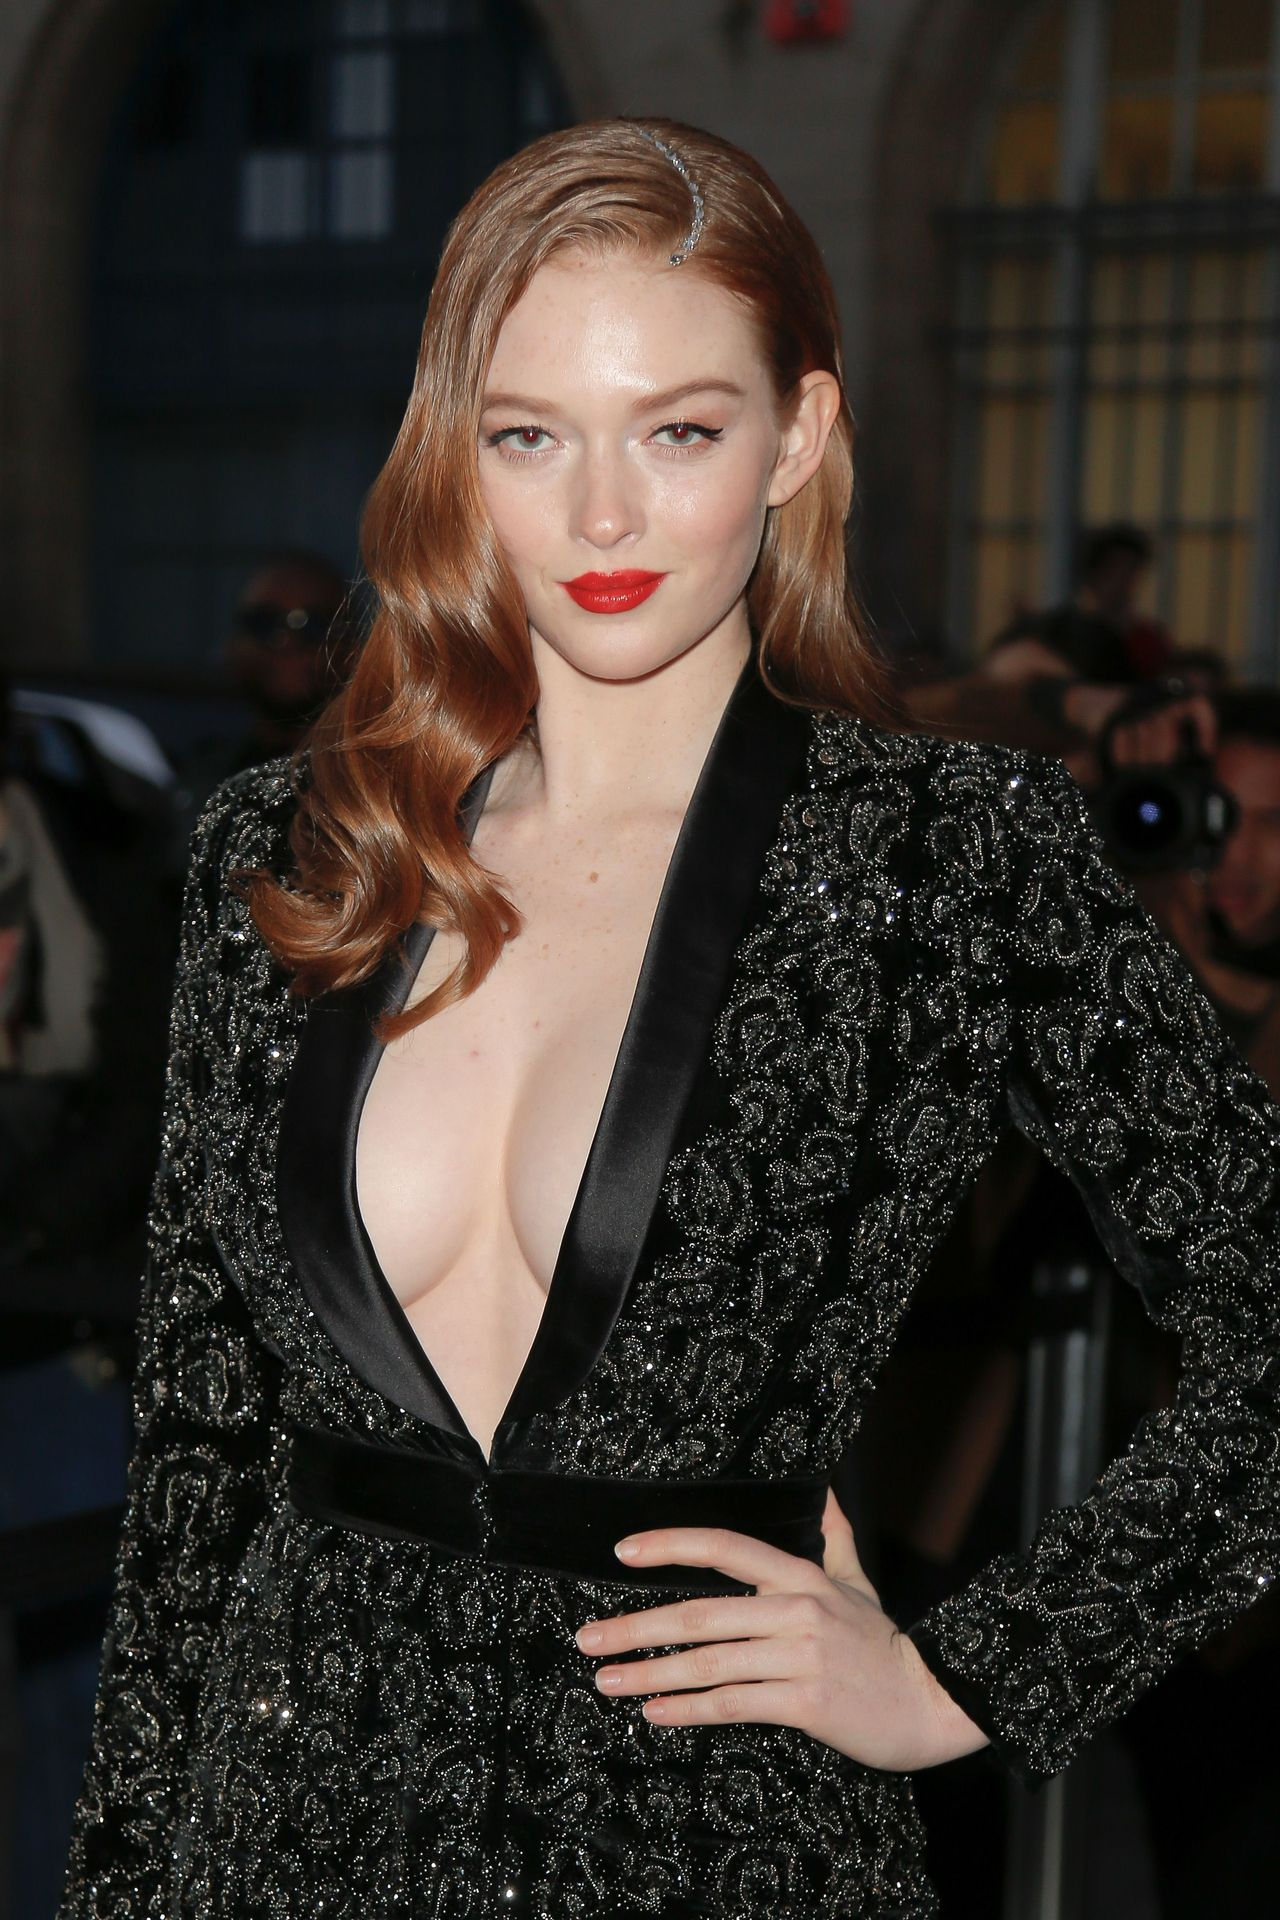 Larsen Thompson Wows With Her Tits At The Fashion Show 0006